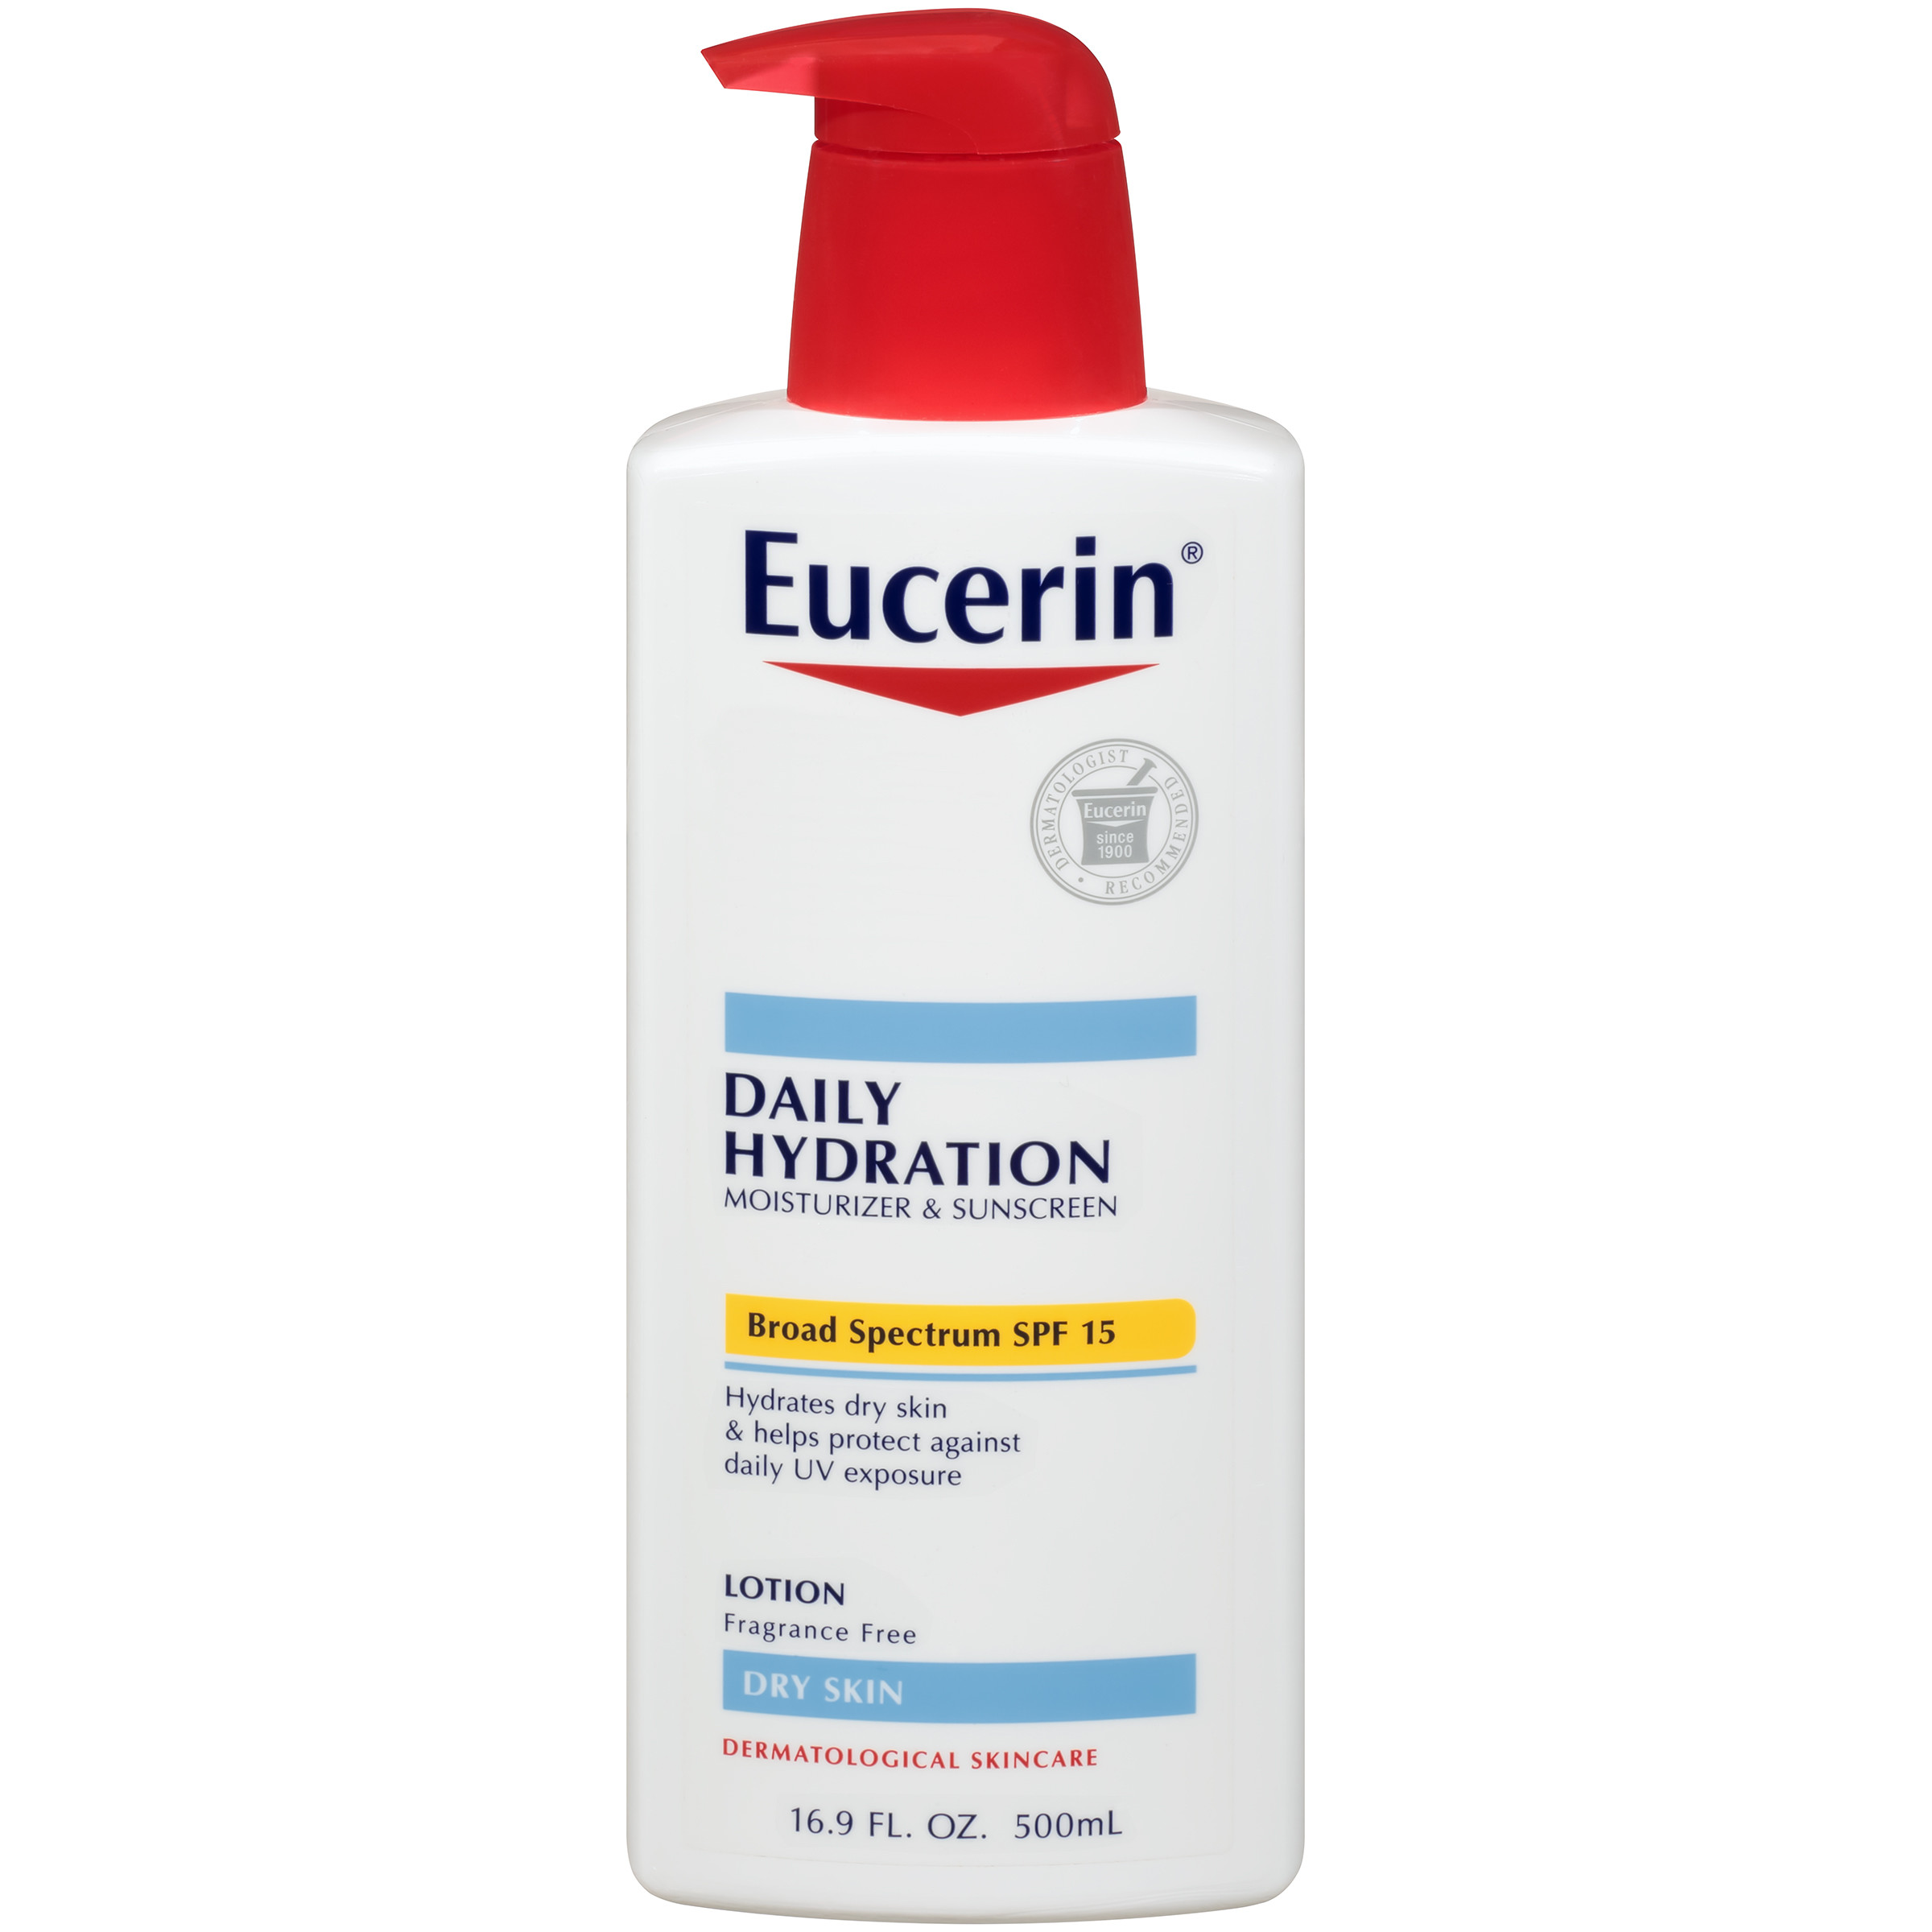 Eucerin Daily Hydration Broad Spectrum SPF 15 Body Lotion 16.9 fl. oz.